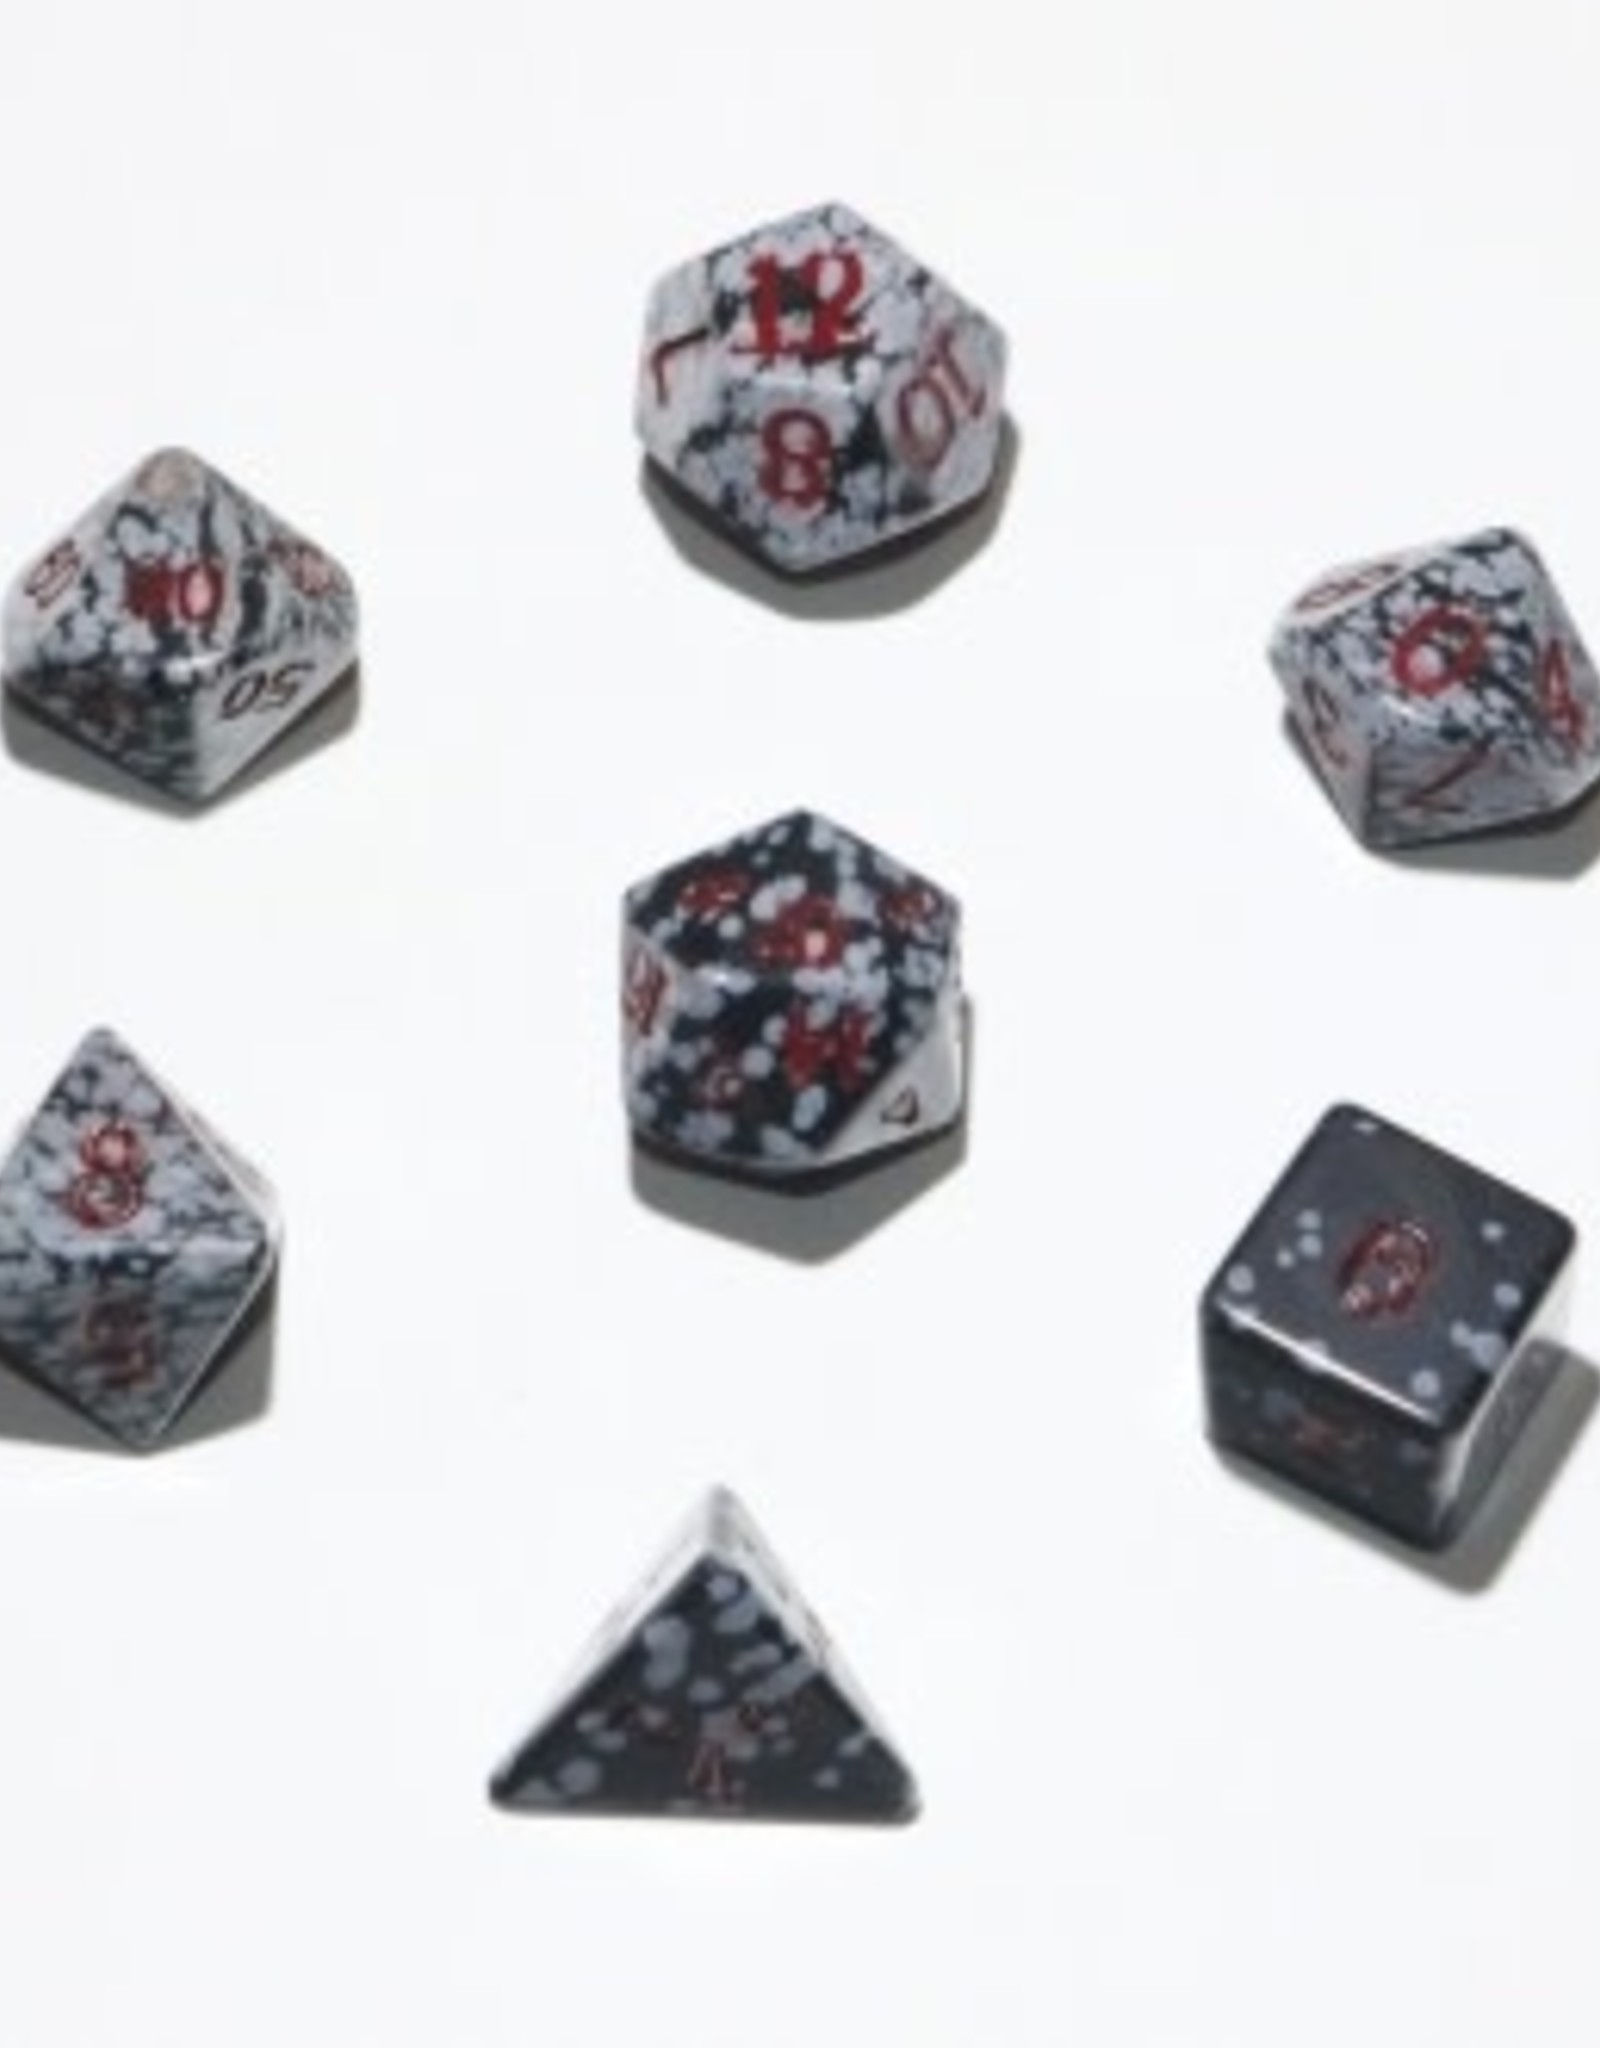 Crystal Caste 16mm Snowflake Obsidian 7 set (red numbers)